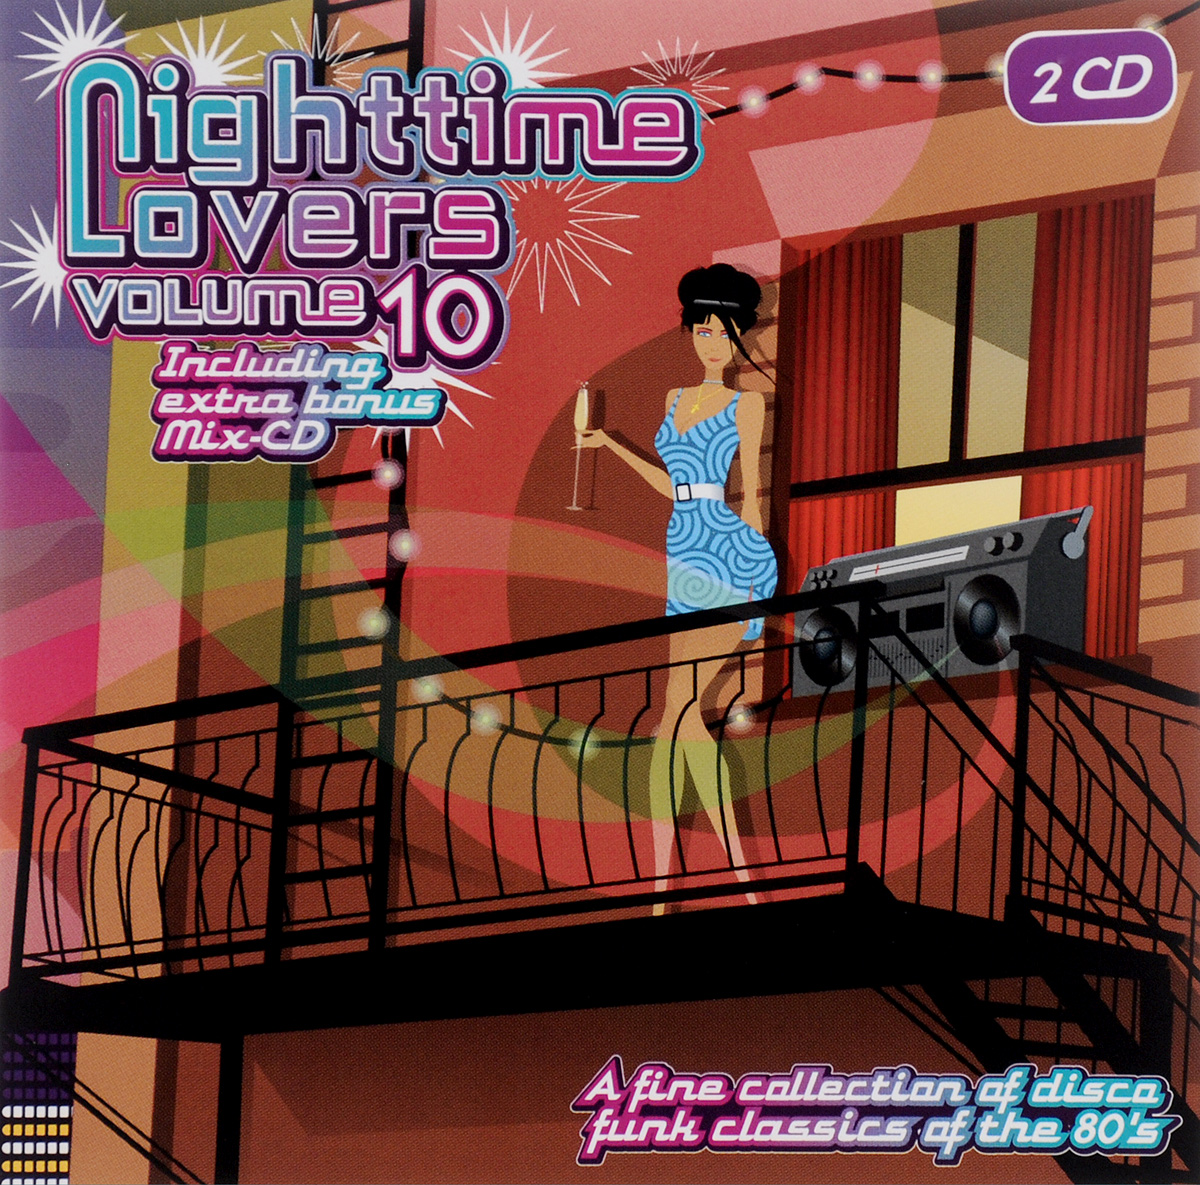 Nighttime Lovers. Volume 10 (2 CD)